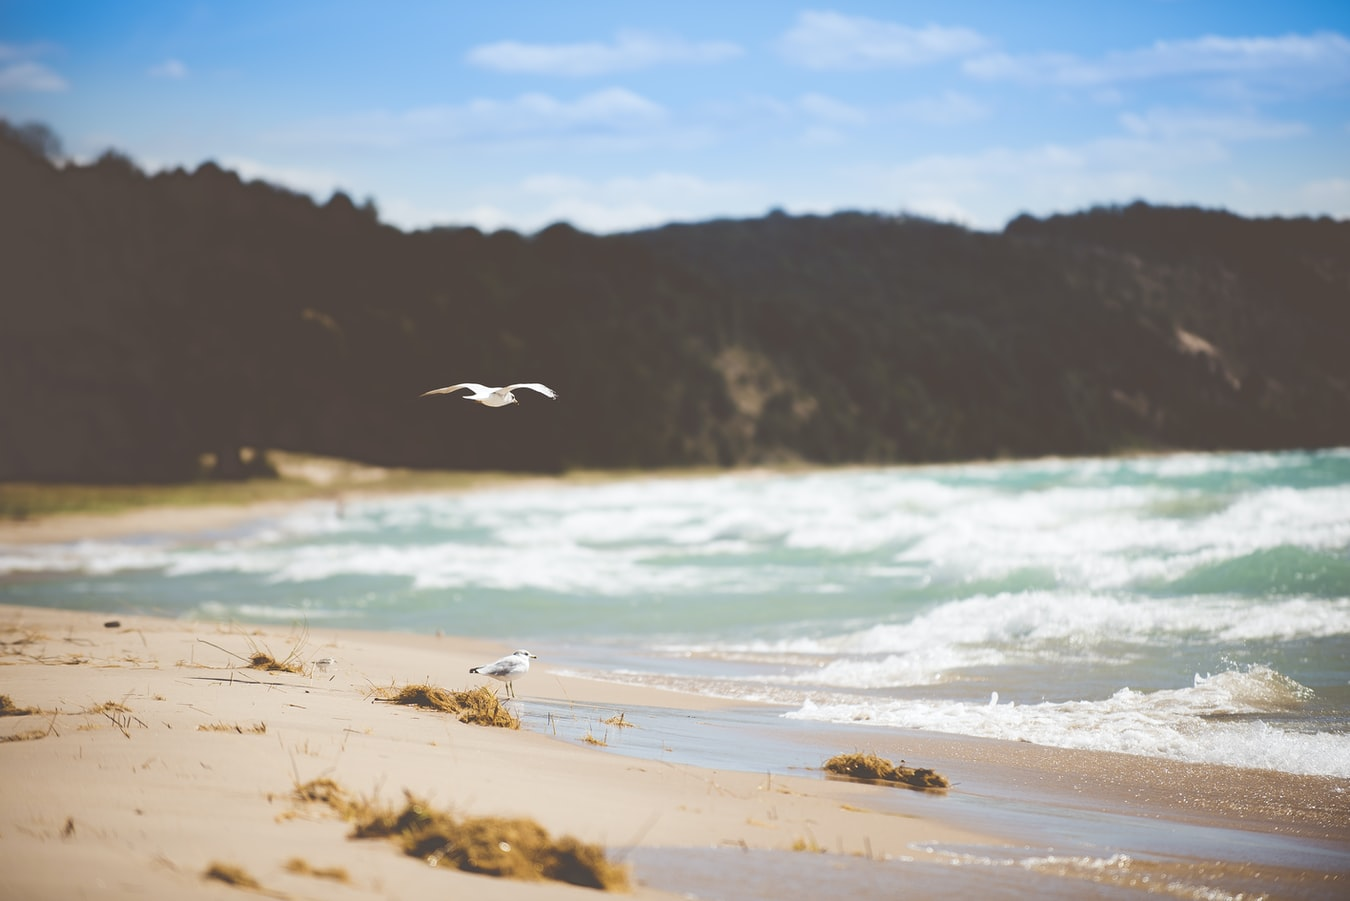 Have a planet-friendly beach day and don't feed birds